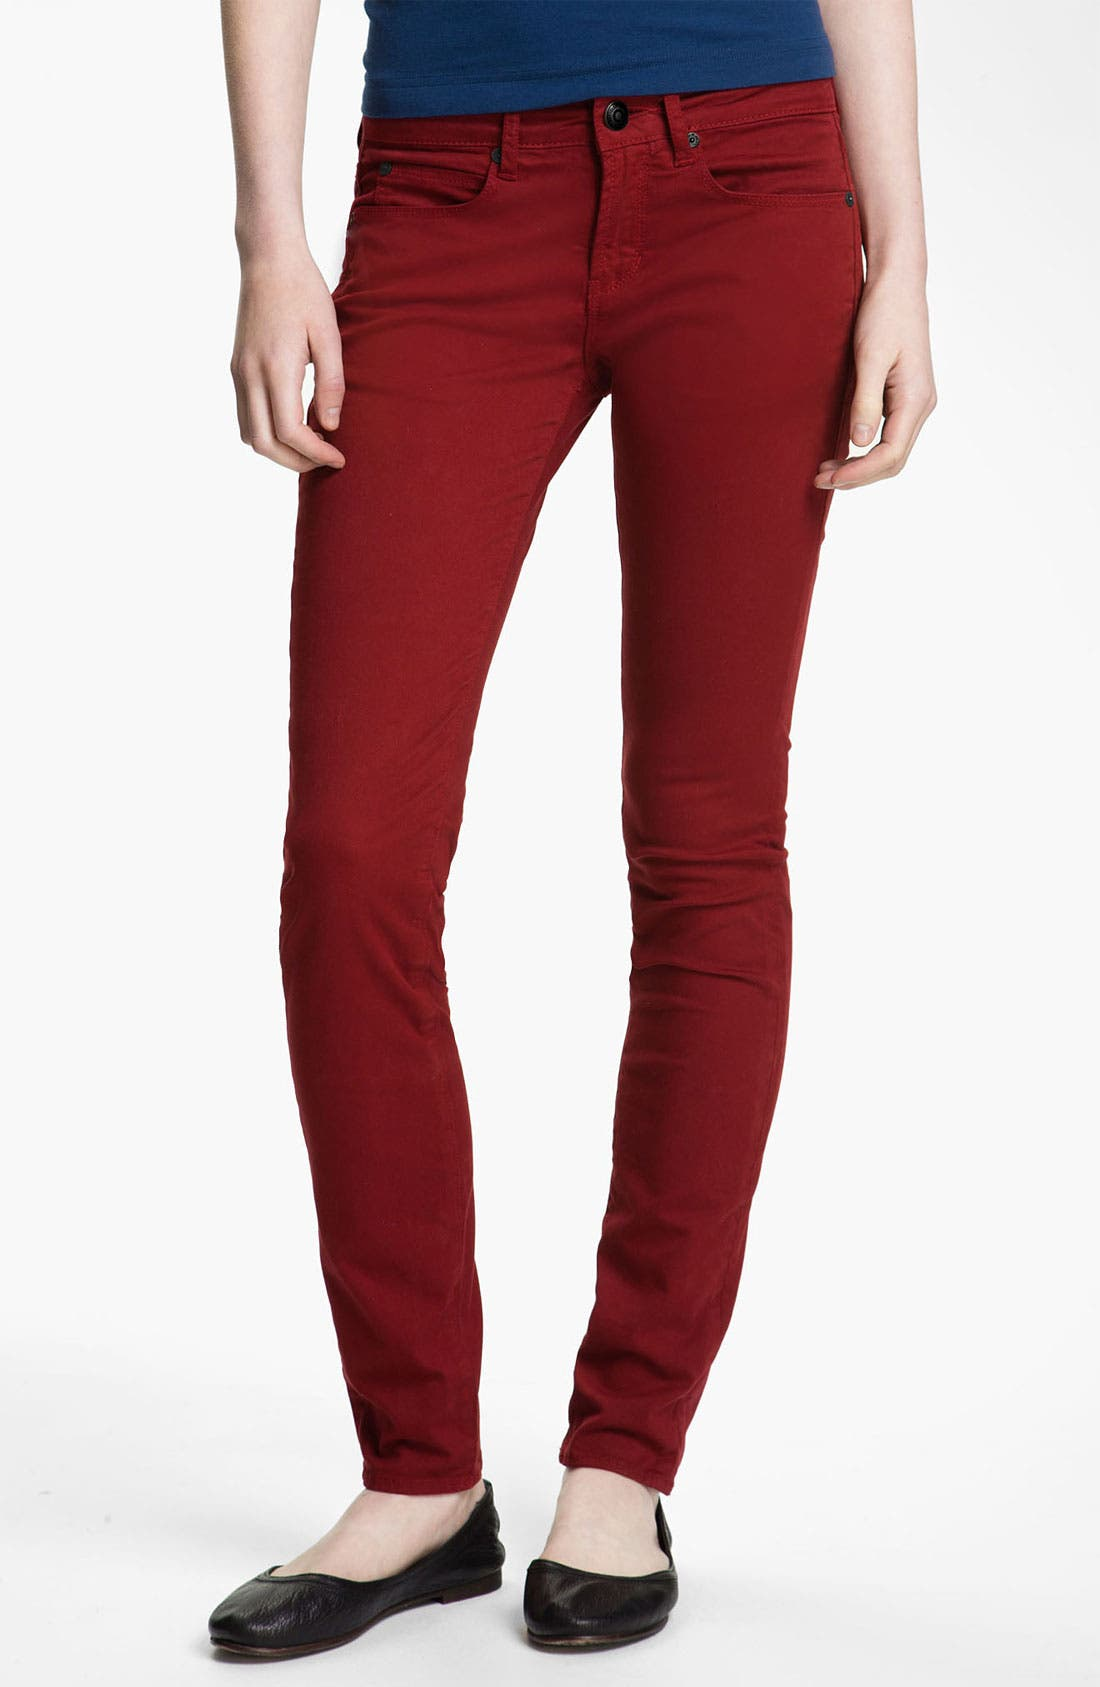 Alternate Image 2  - Articles of Society 'Mya' Skinny Jeans (Scarlet) (Juniors)